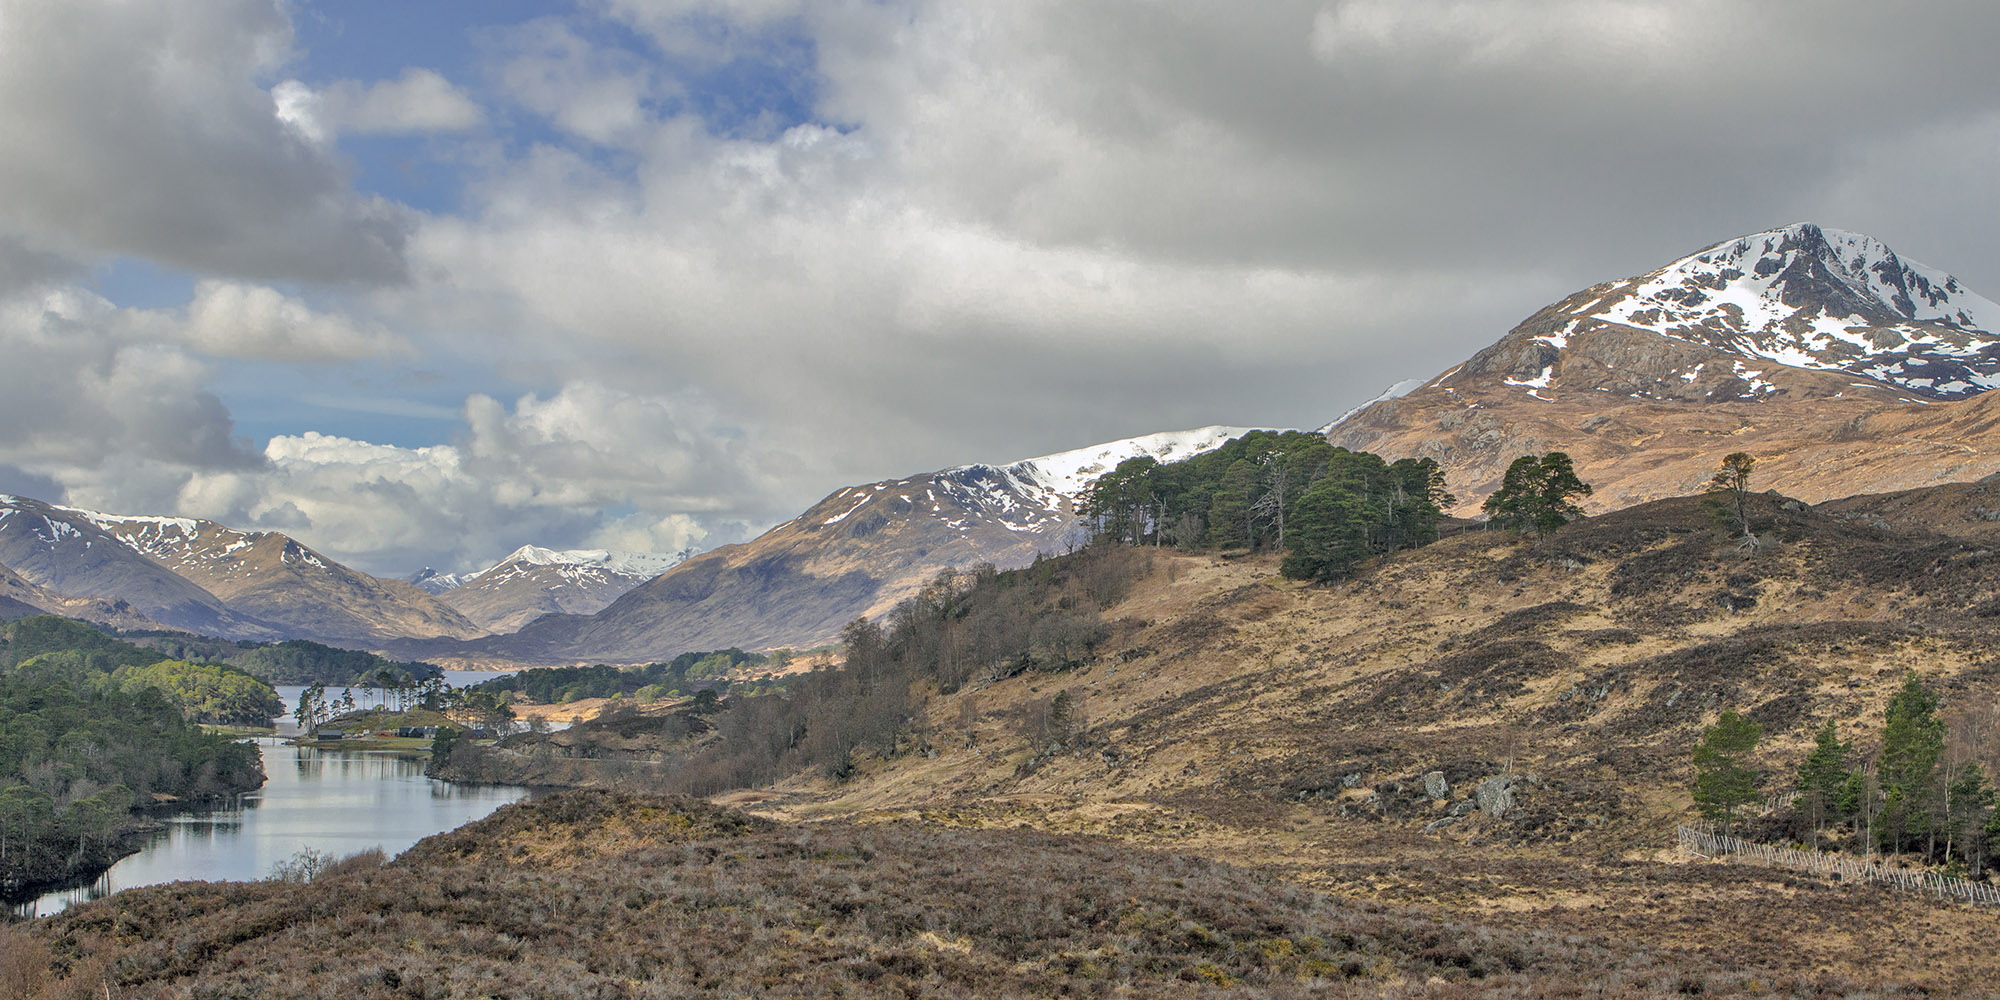 Glen Affric, Scottish Highlands, mountains, lochs, landscape photography